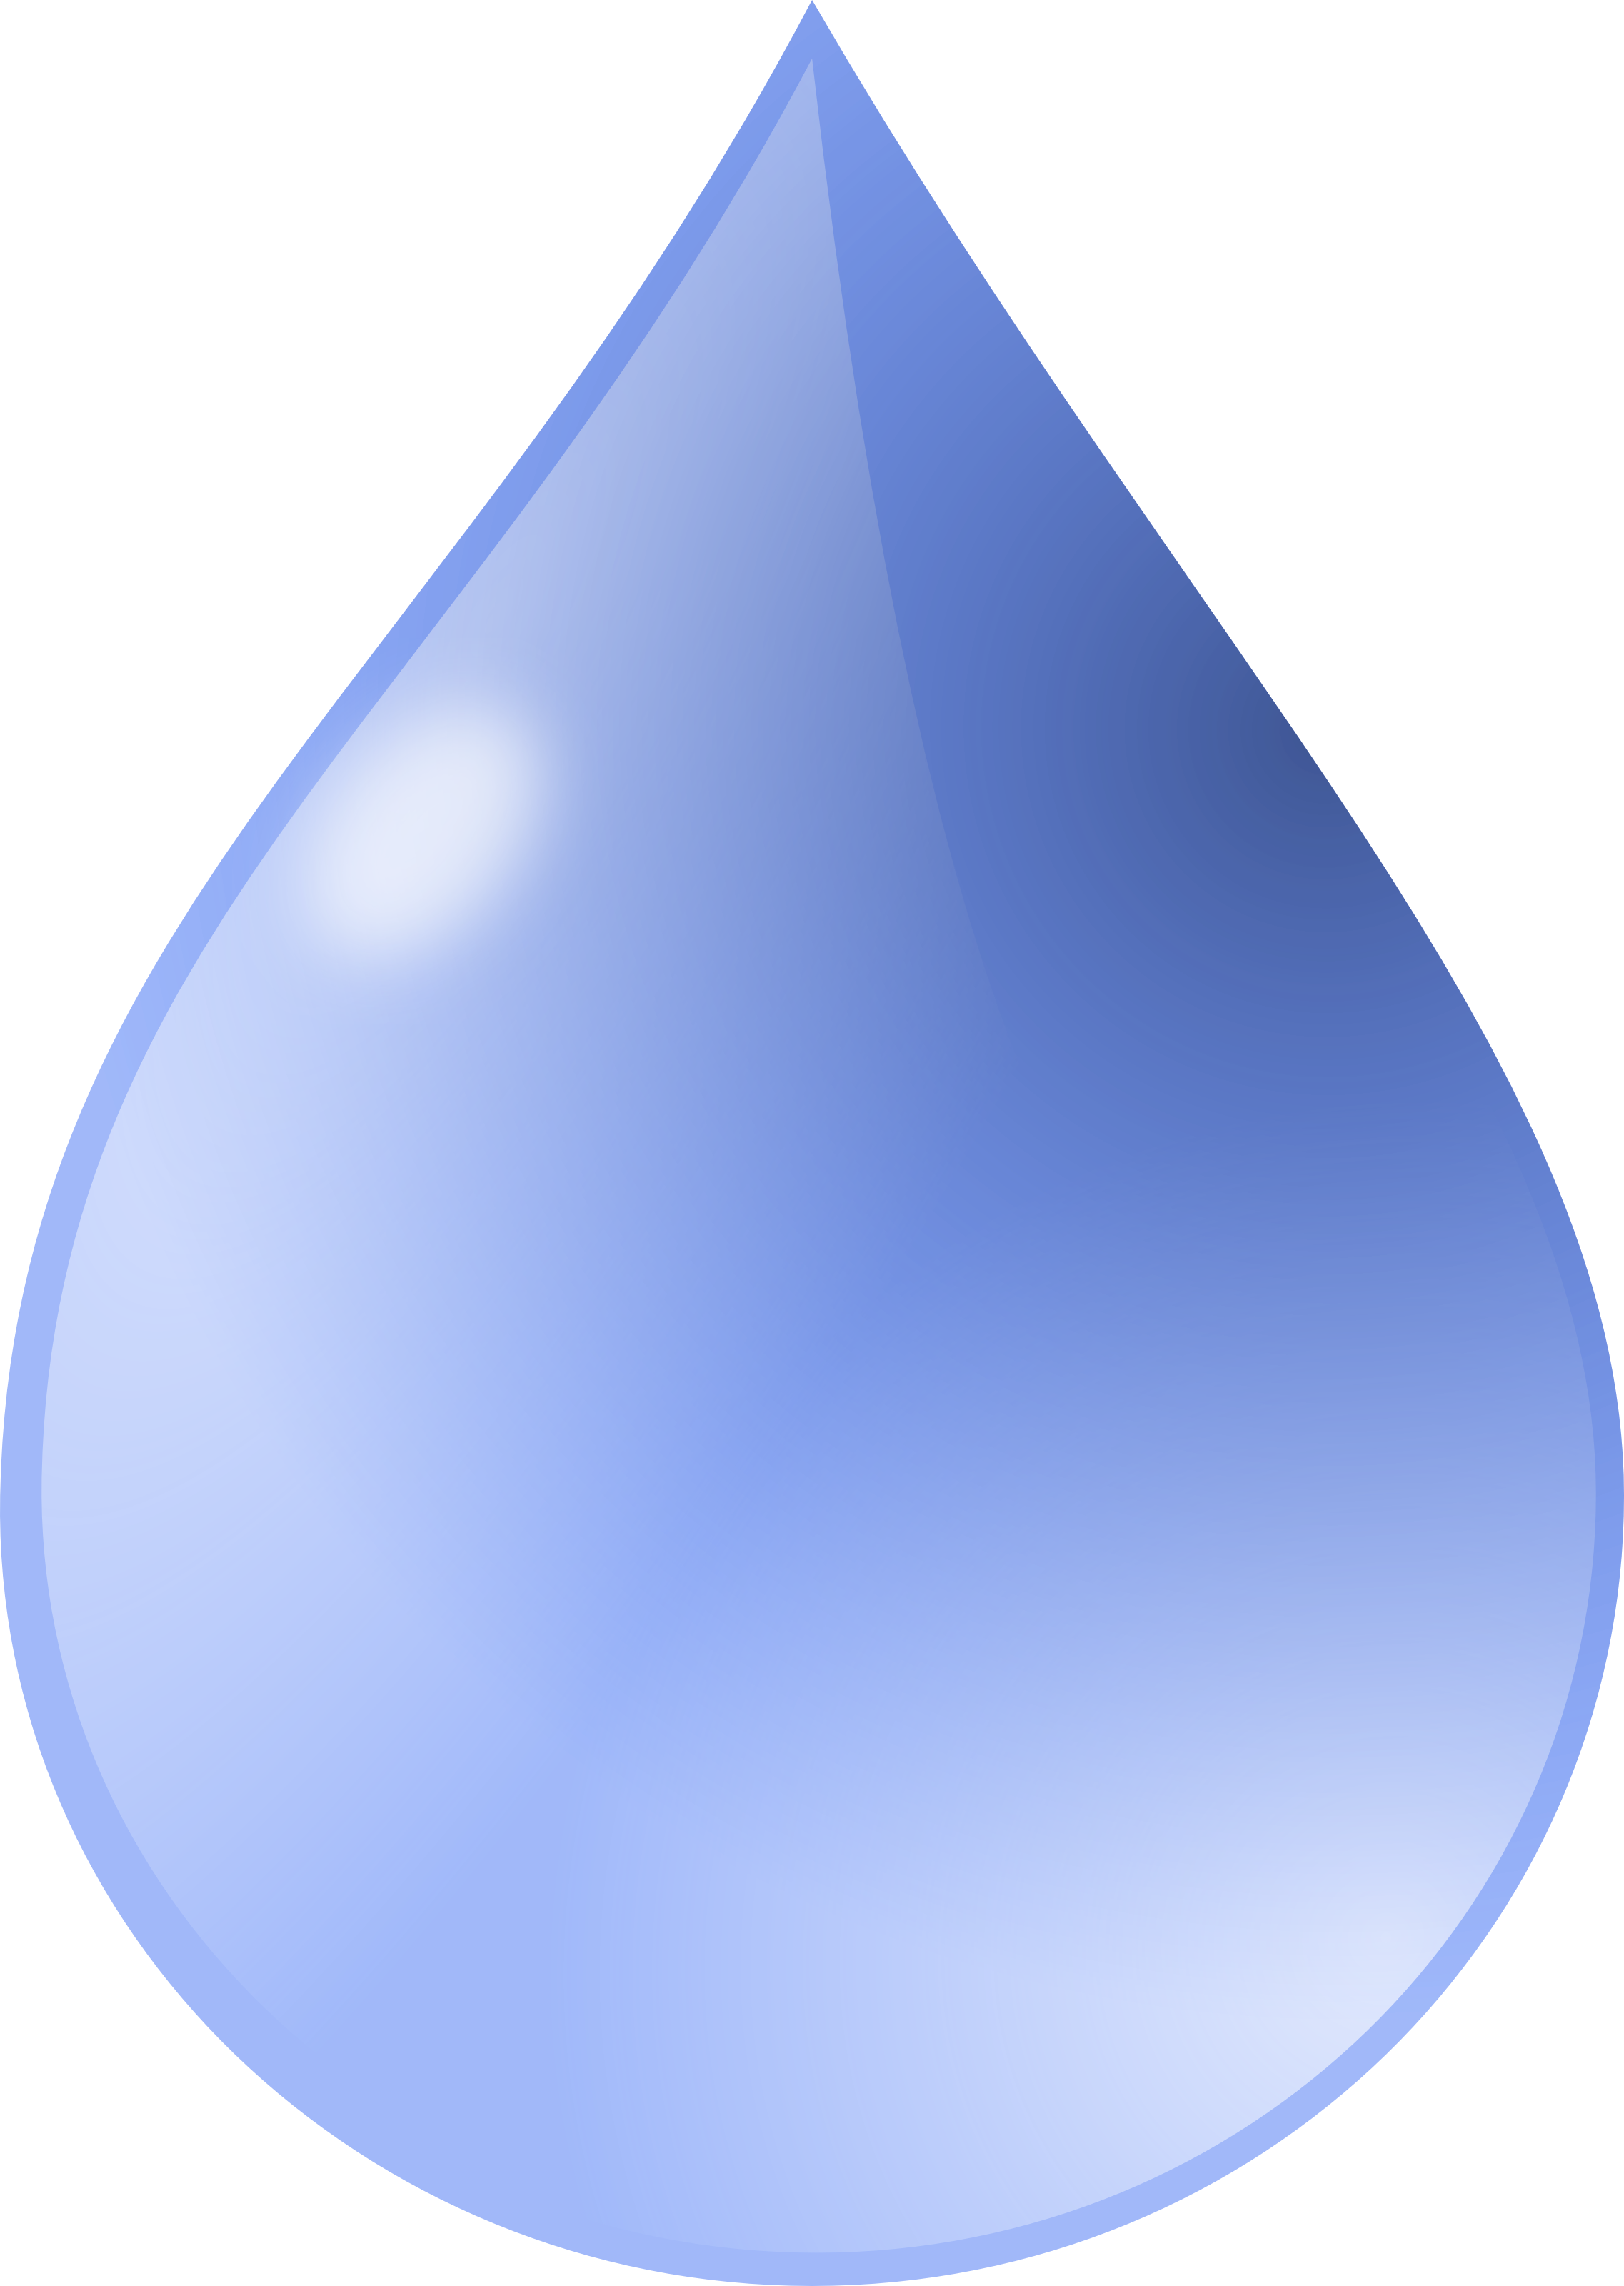 Water Droplet PNG HD Transparent Water Droplet HD.PNG Images. | PlusPNG